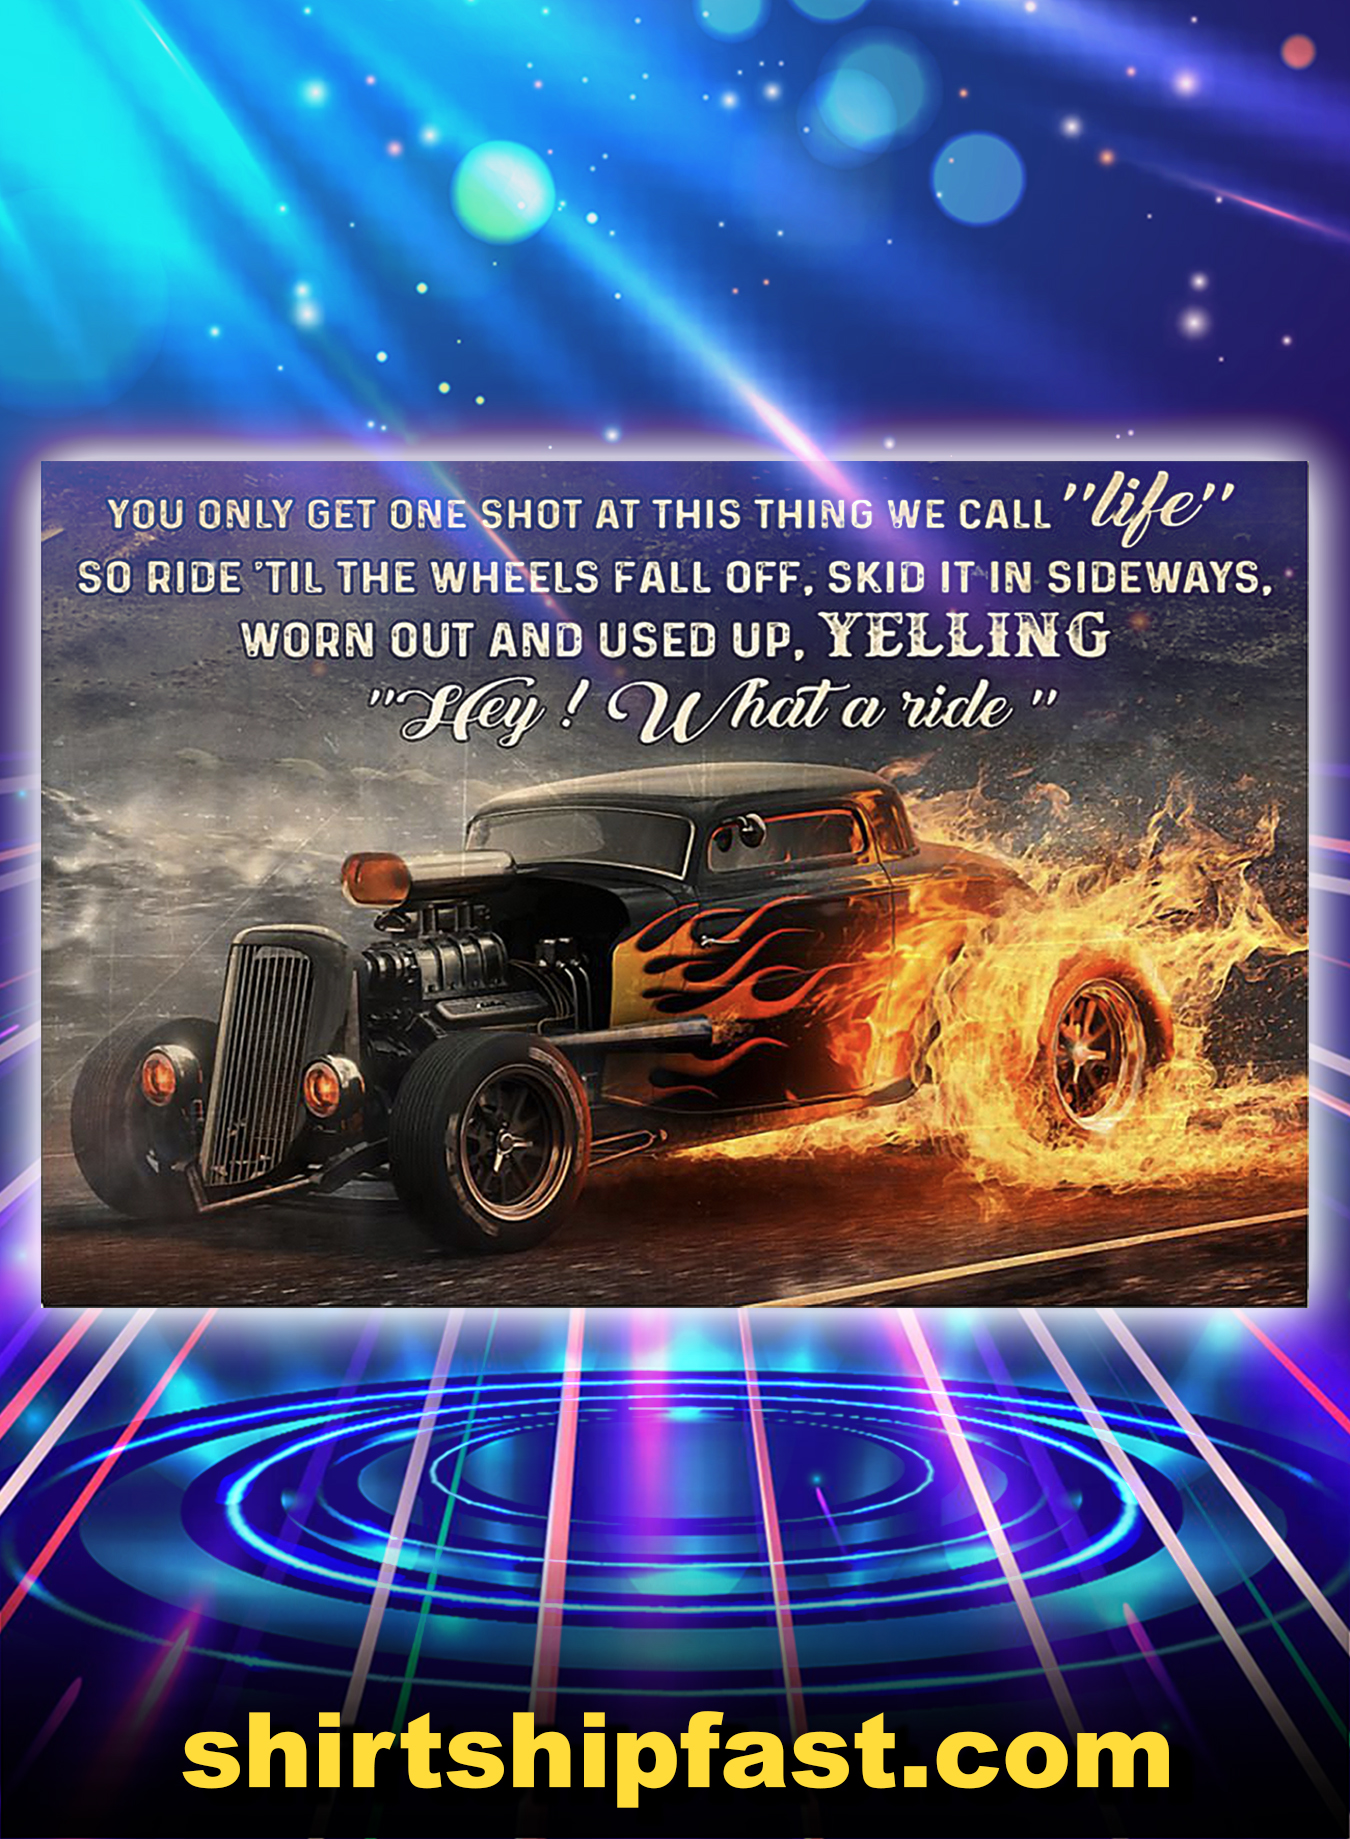 Hot rod what a ride poster - A2